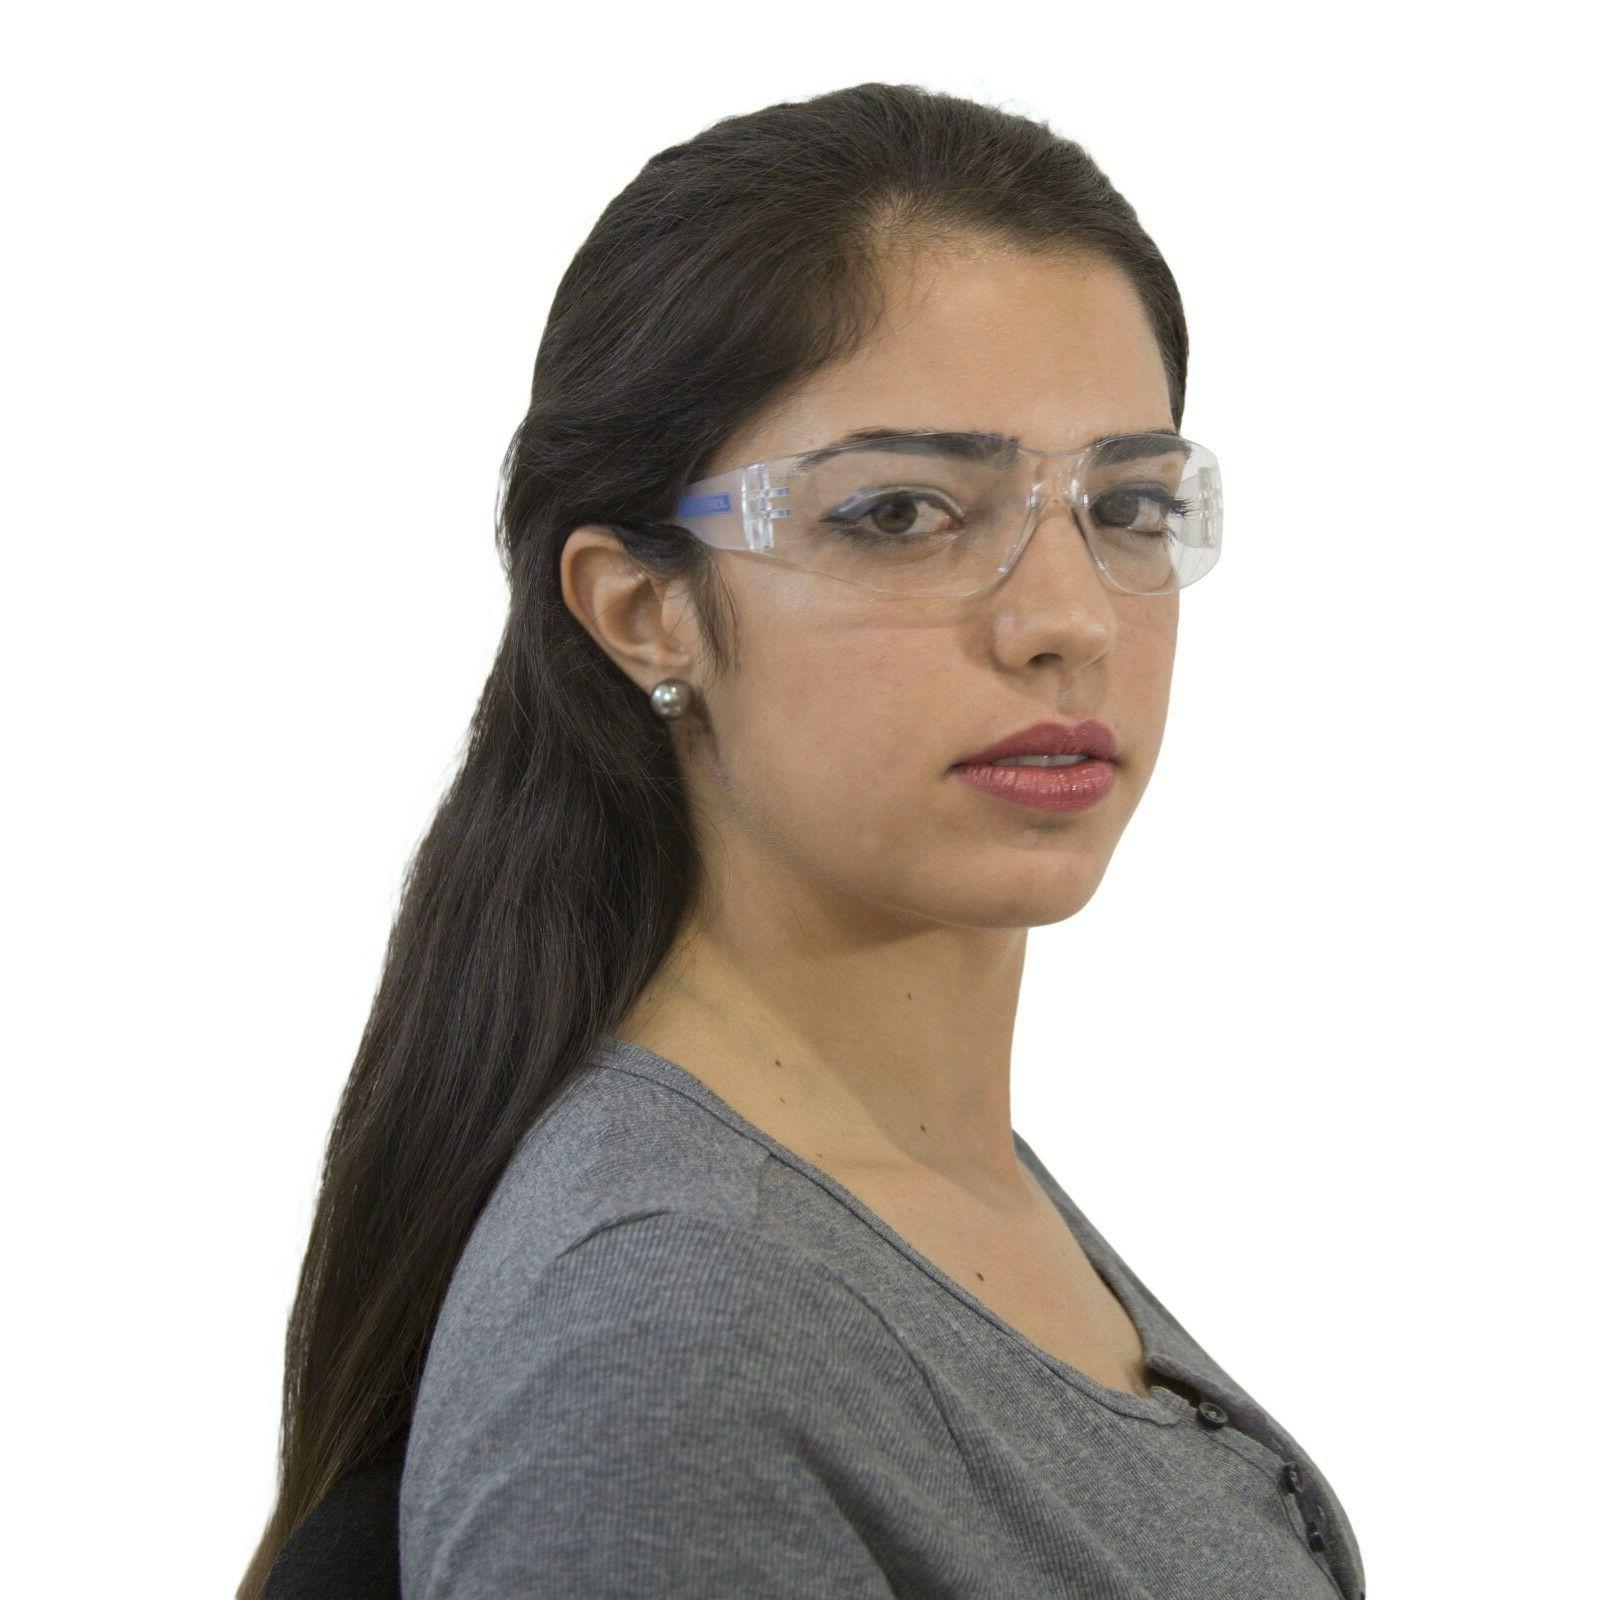 12 JORESTECH UV SAFETY GLASSES